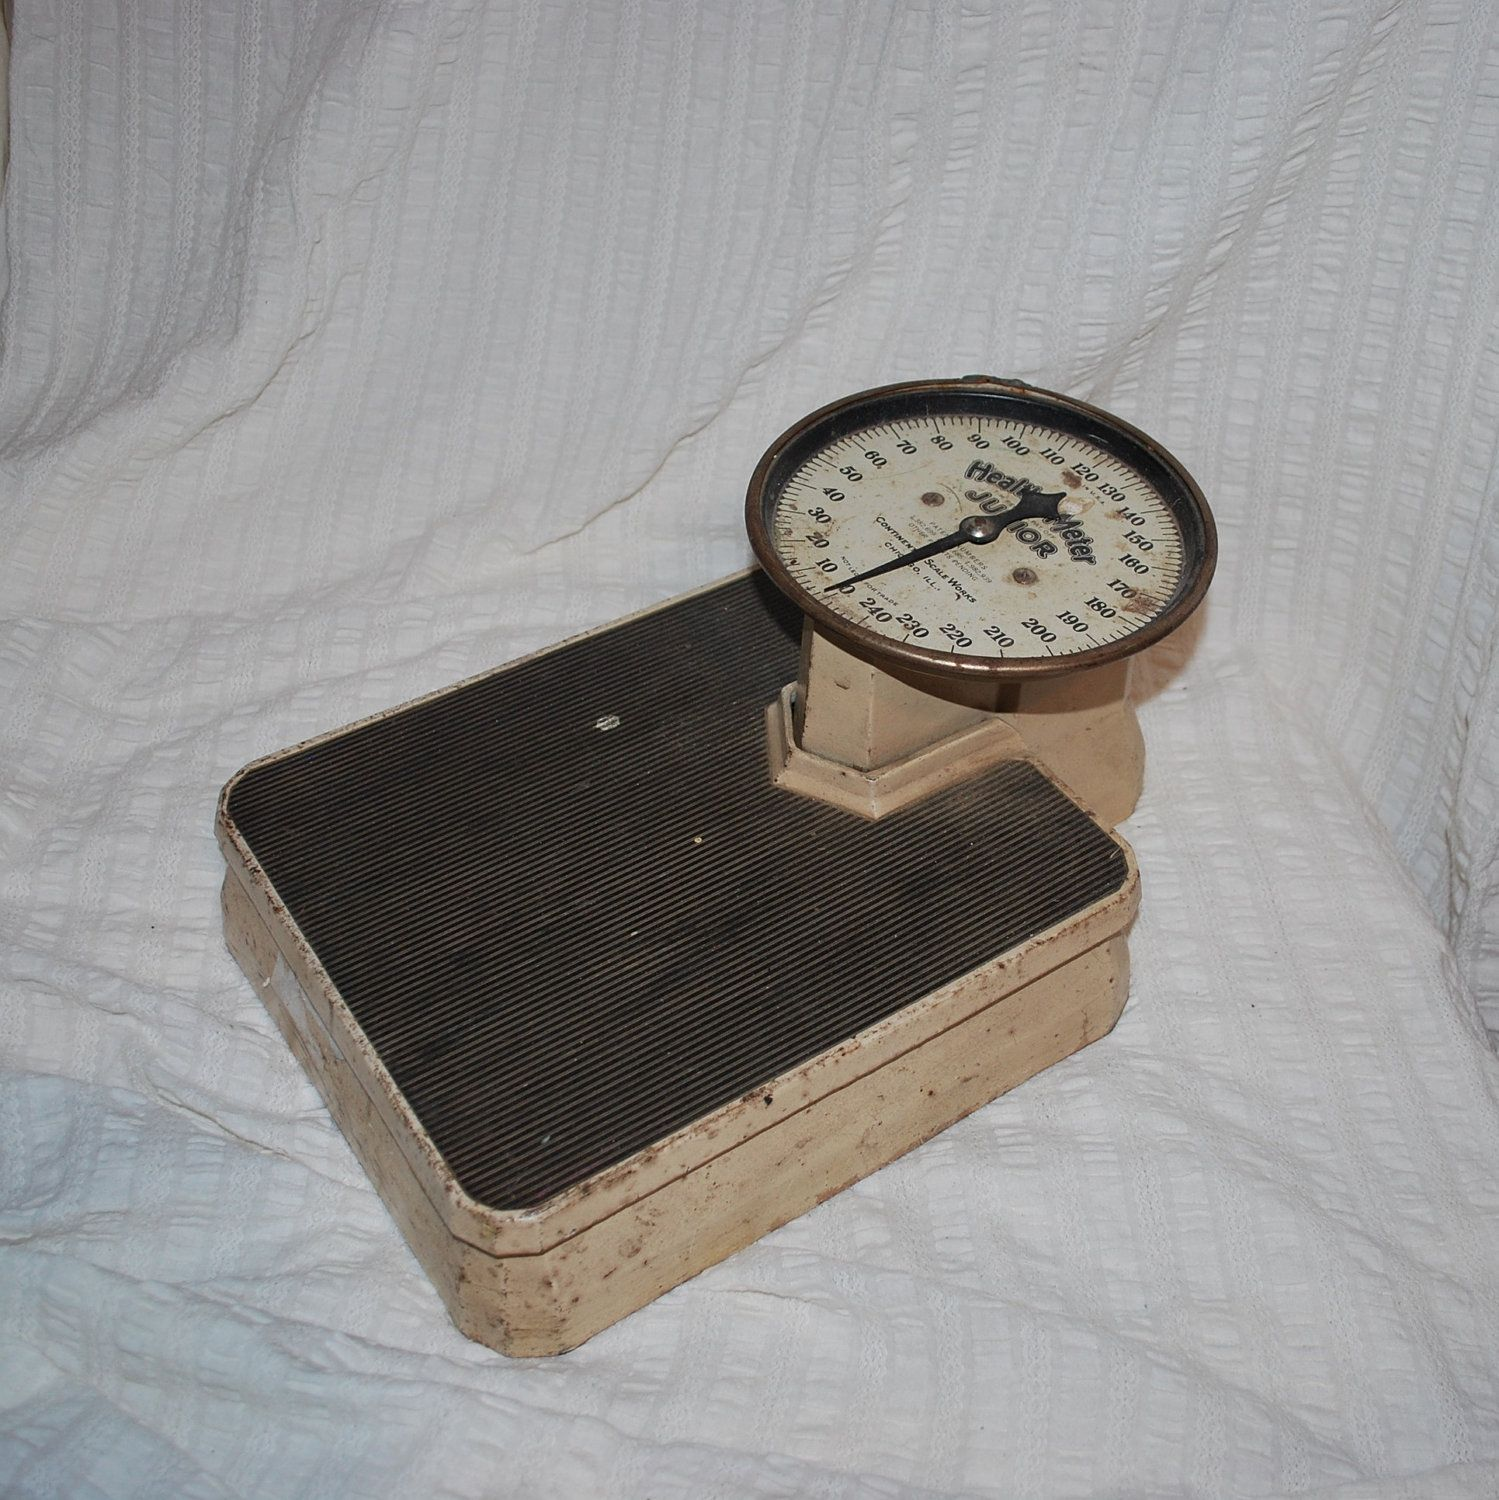 Antique Or Vintage Scale Medical Personal Bathroom Very Old